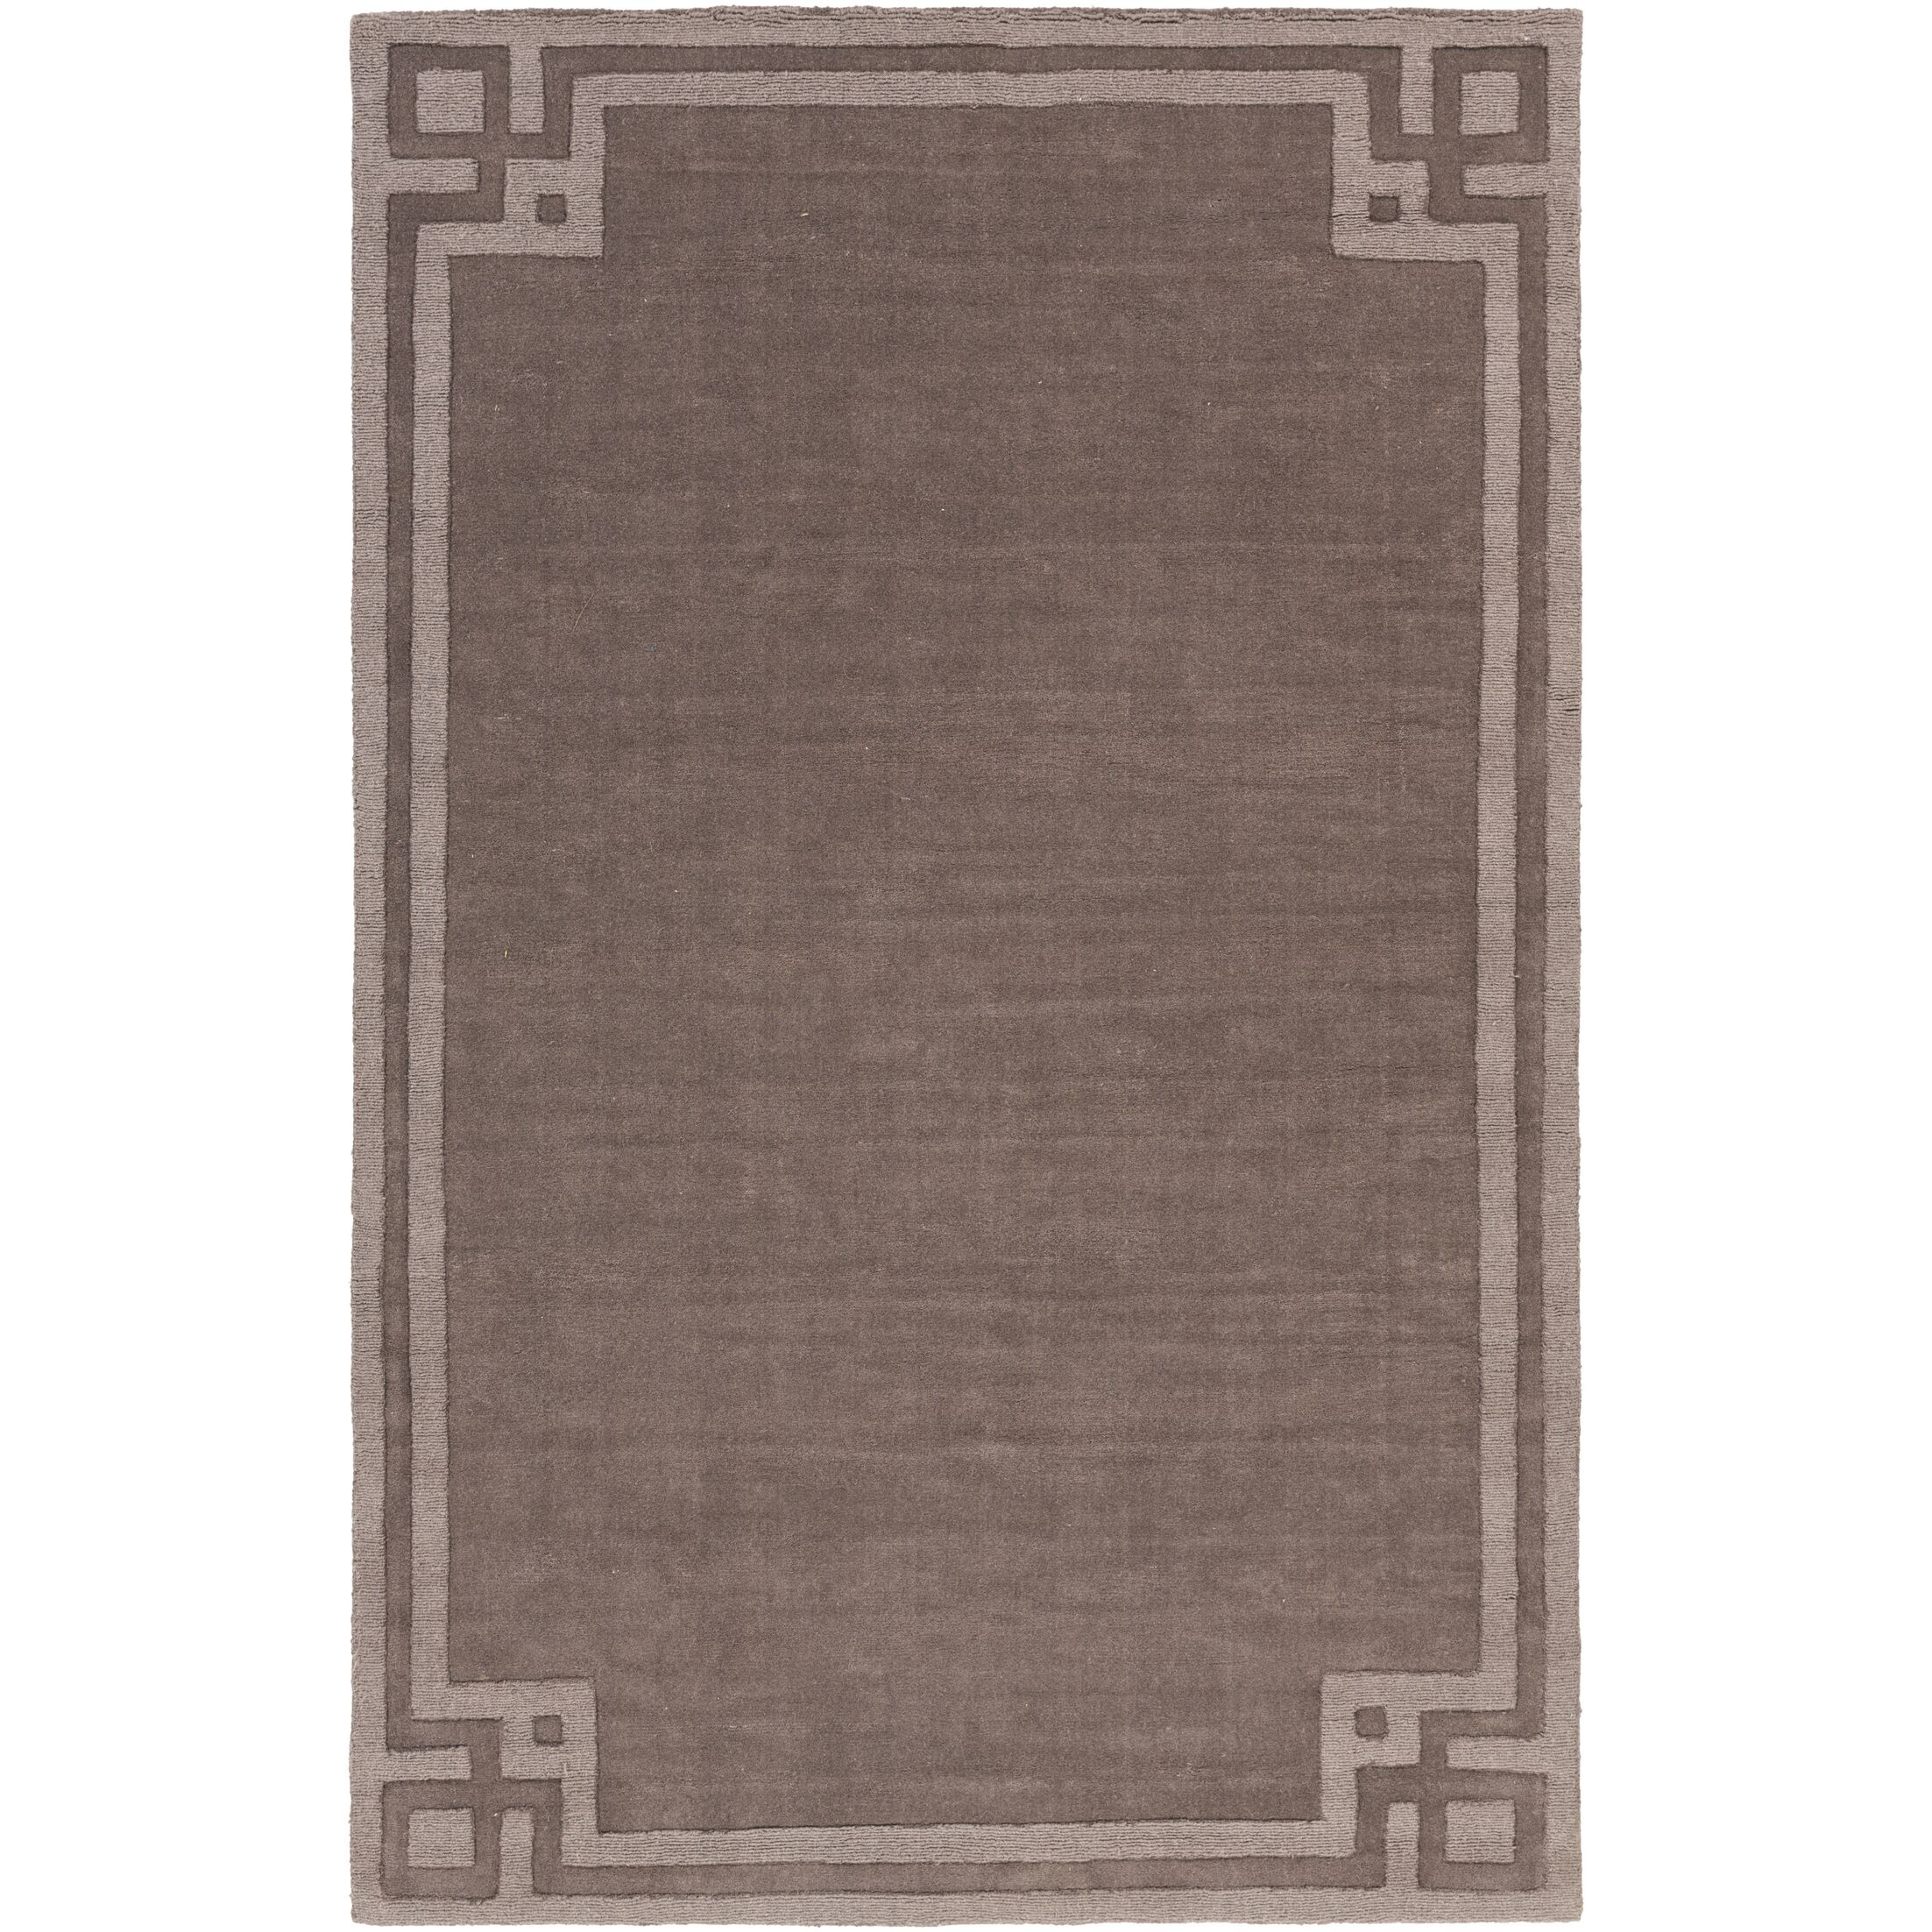 Peever Hand-Loomed Charcoal Area Rug Rug Size: Rectangle 5' x 8'